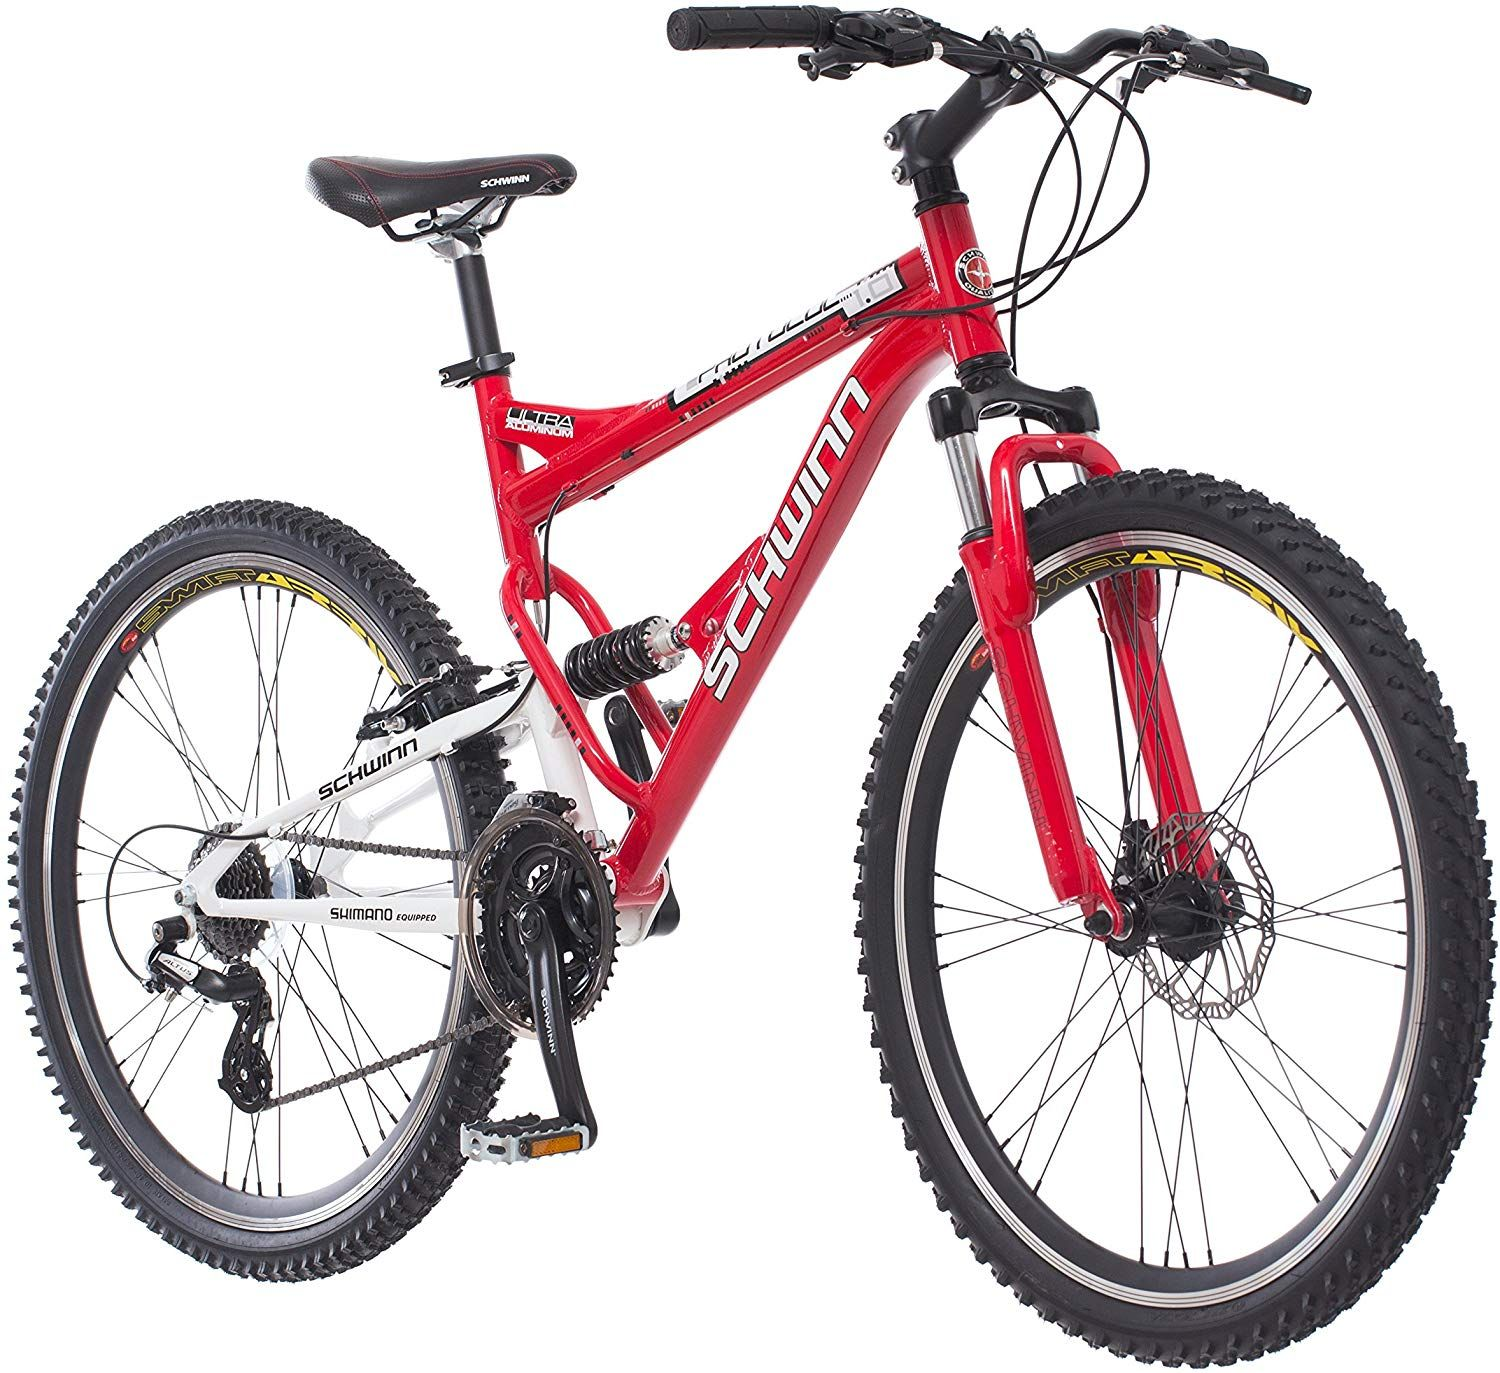 Schwinn Protocol Mountain Bike Review 288 Customer Reviews With